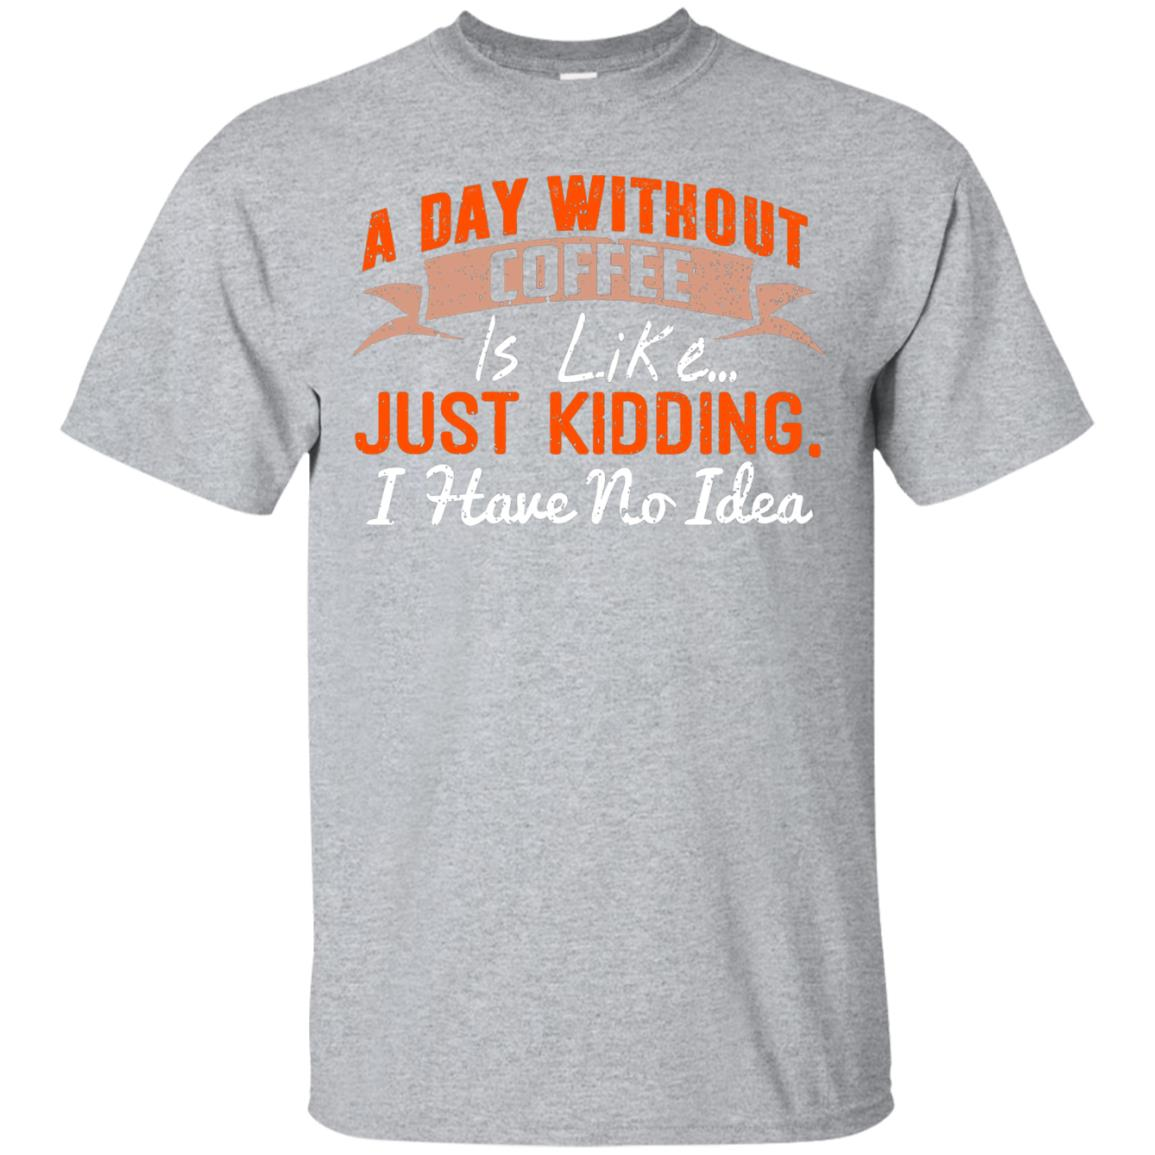 2d665ea60 Awesome a day without coffee is like funny coffee t shirt - 99promocode